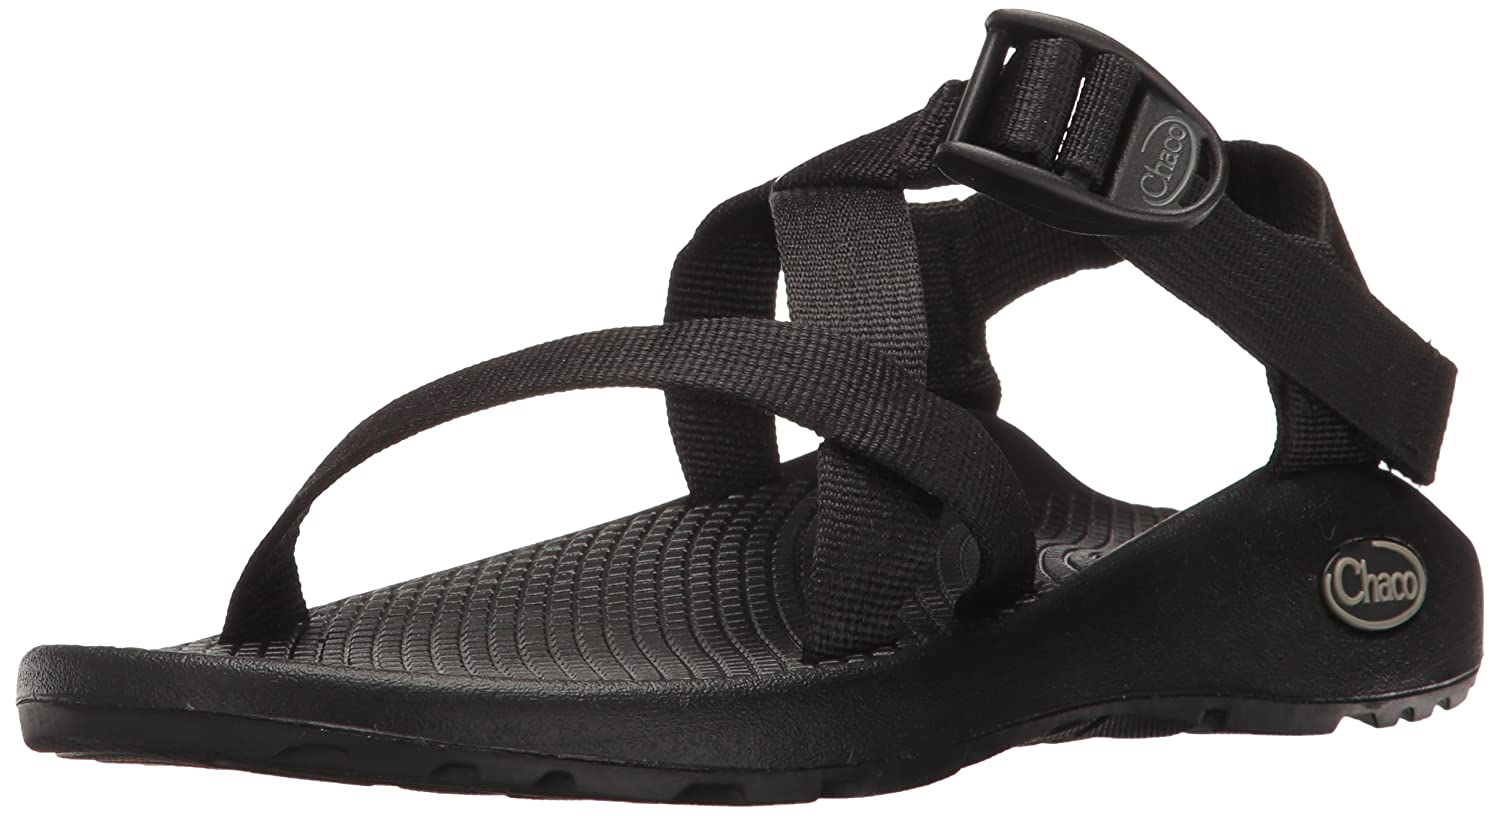 Chaco Women's Z1 Classic Athletic Sandal B011AHSDUU 5 W US|Black